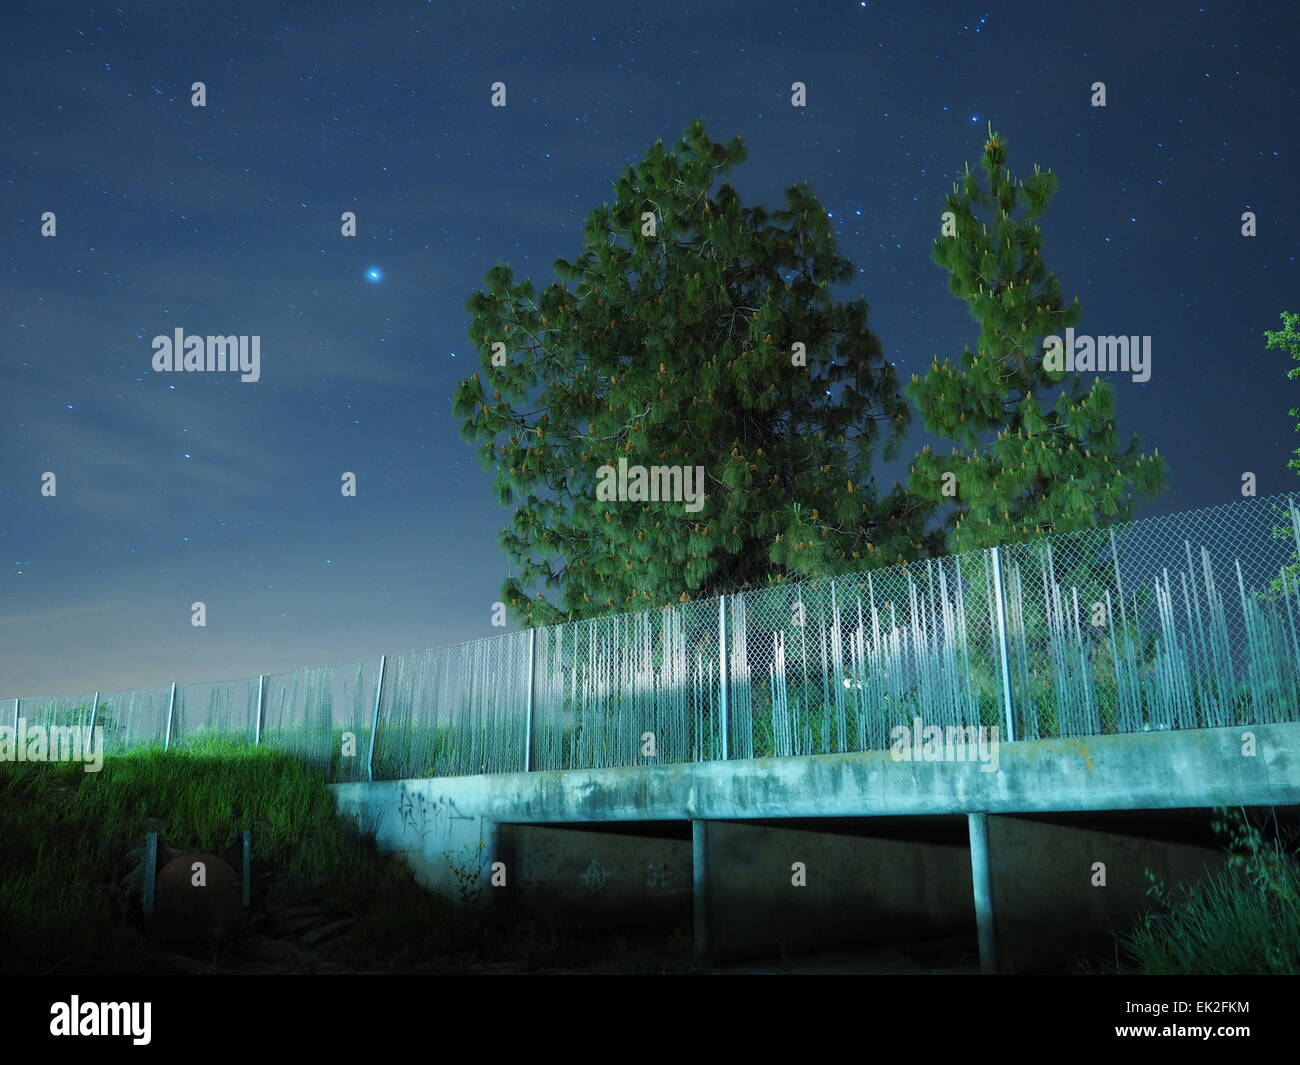 night sky with trees, stars, grass, and a culvert. - Stock Image